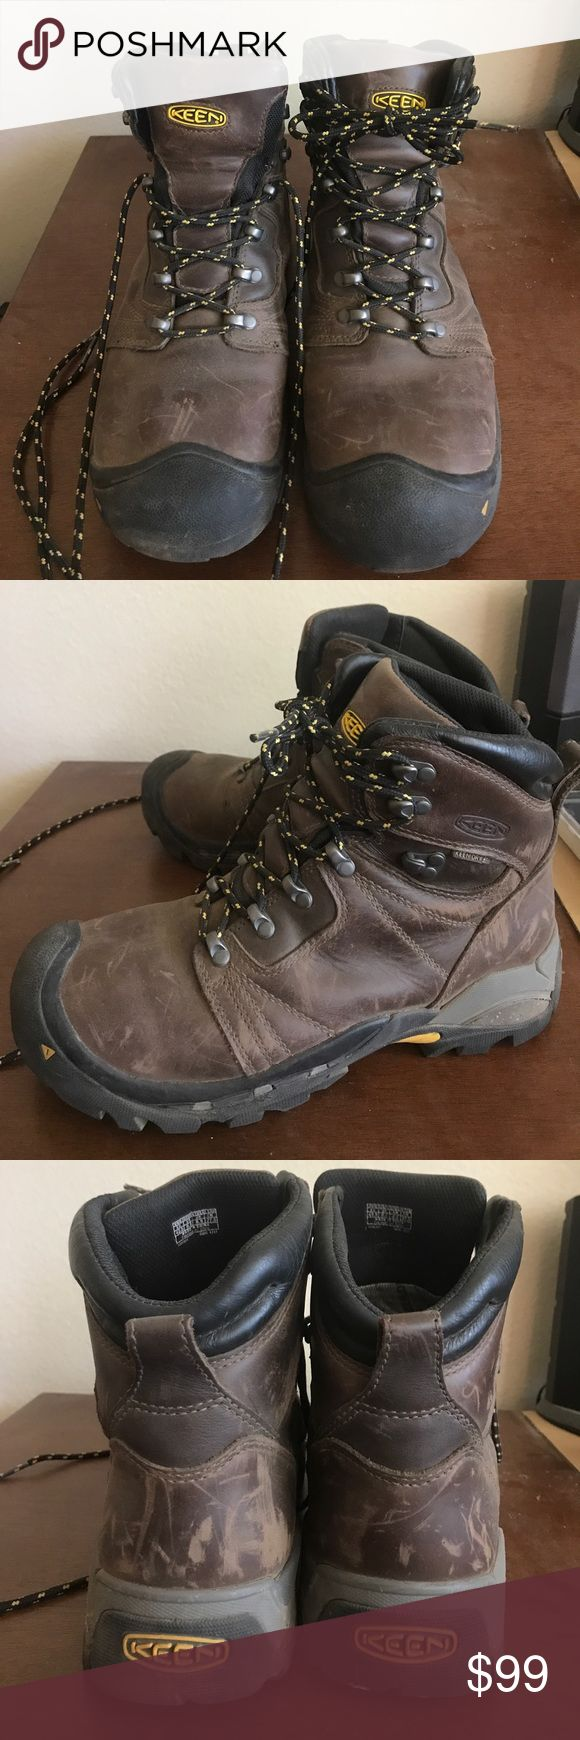 Keen backpacking boots, hiking boots Genuine leather, fully waterproof backpacking boots from Keen. Excellent condition. Worn only 8 miles. Practically brand new. Keen Shoes Boots